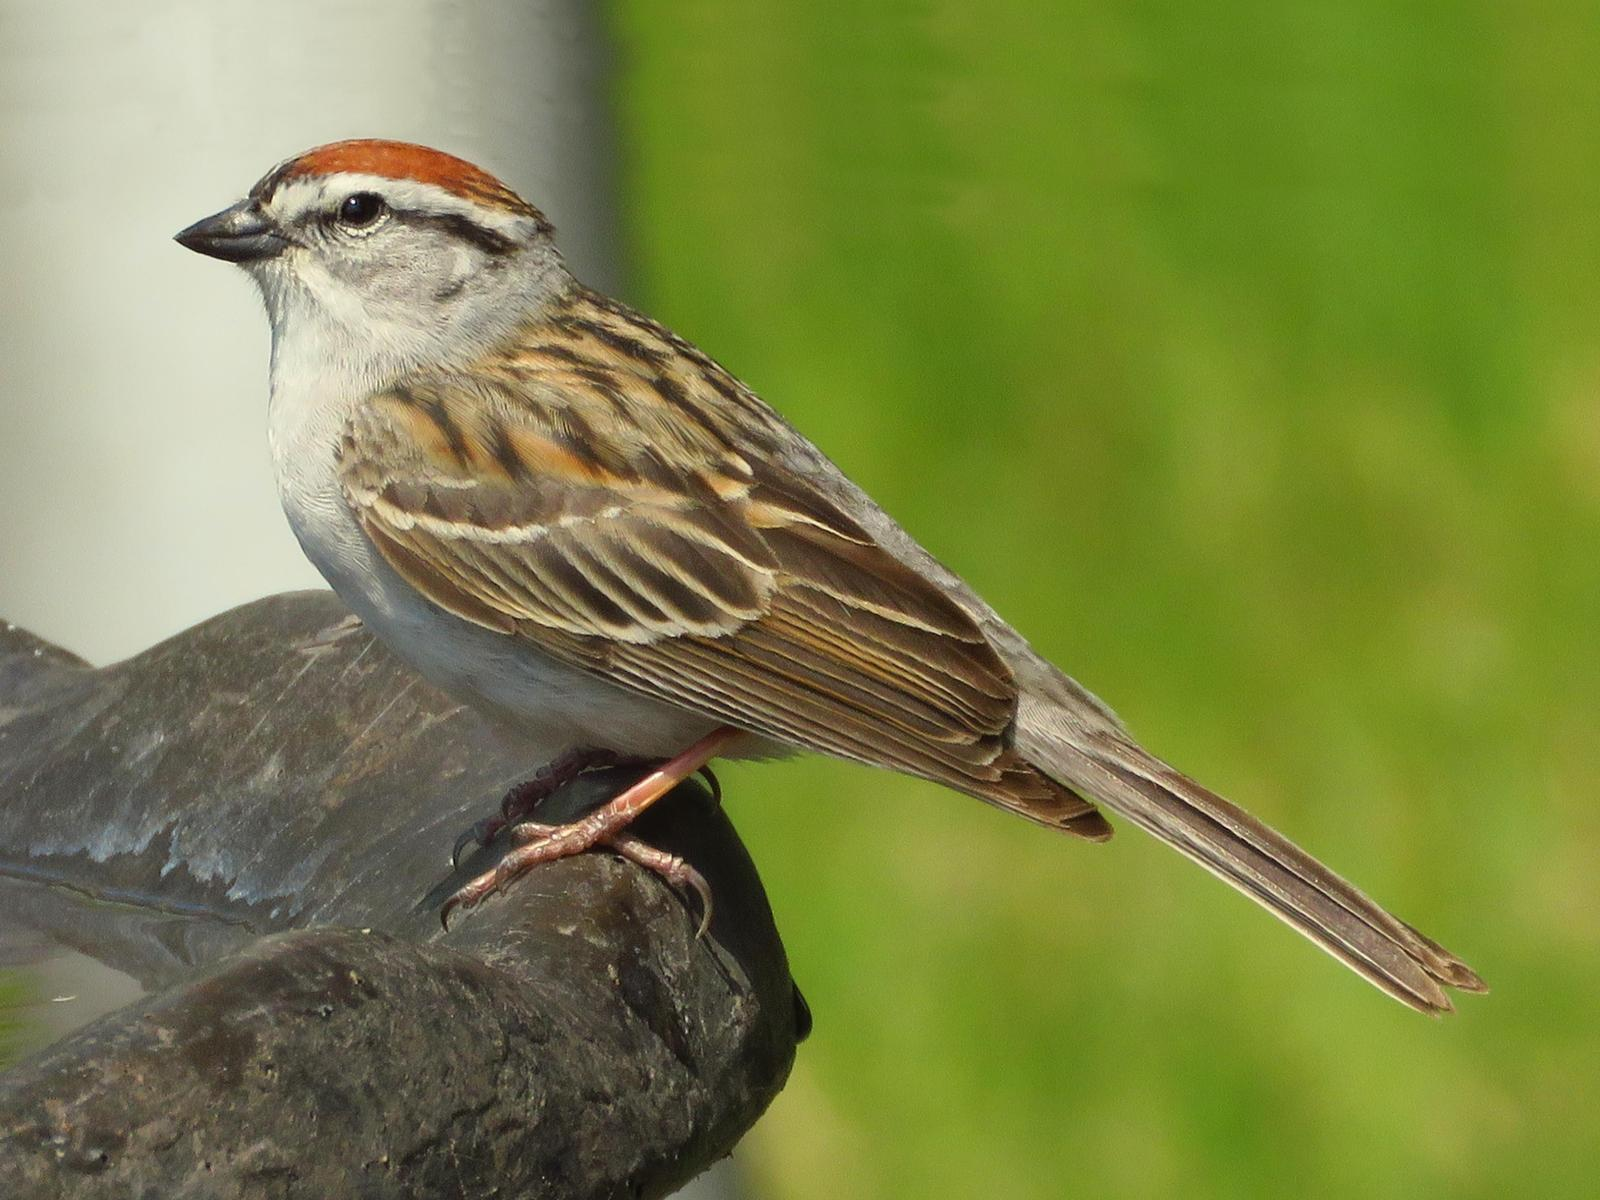 Chipping Sparrow Photo by Bob Neugebauer